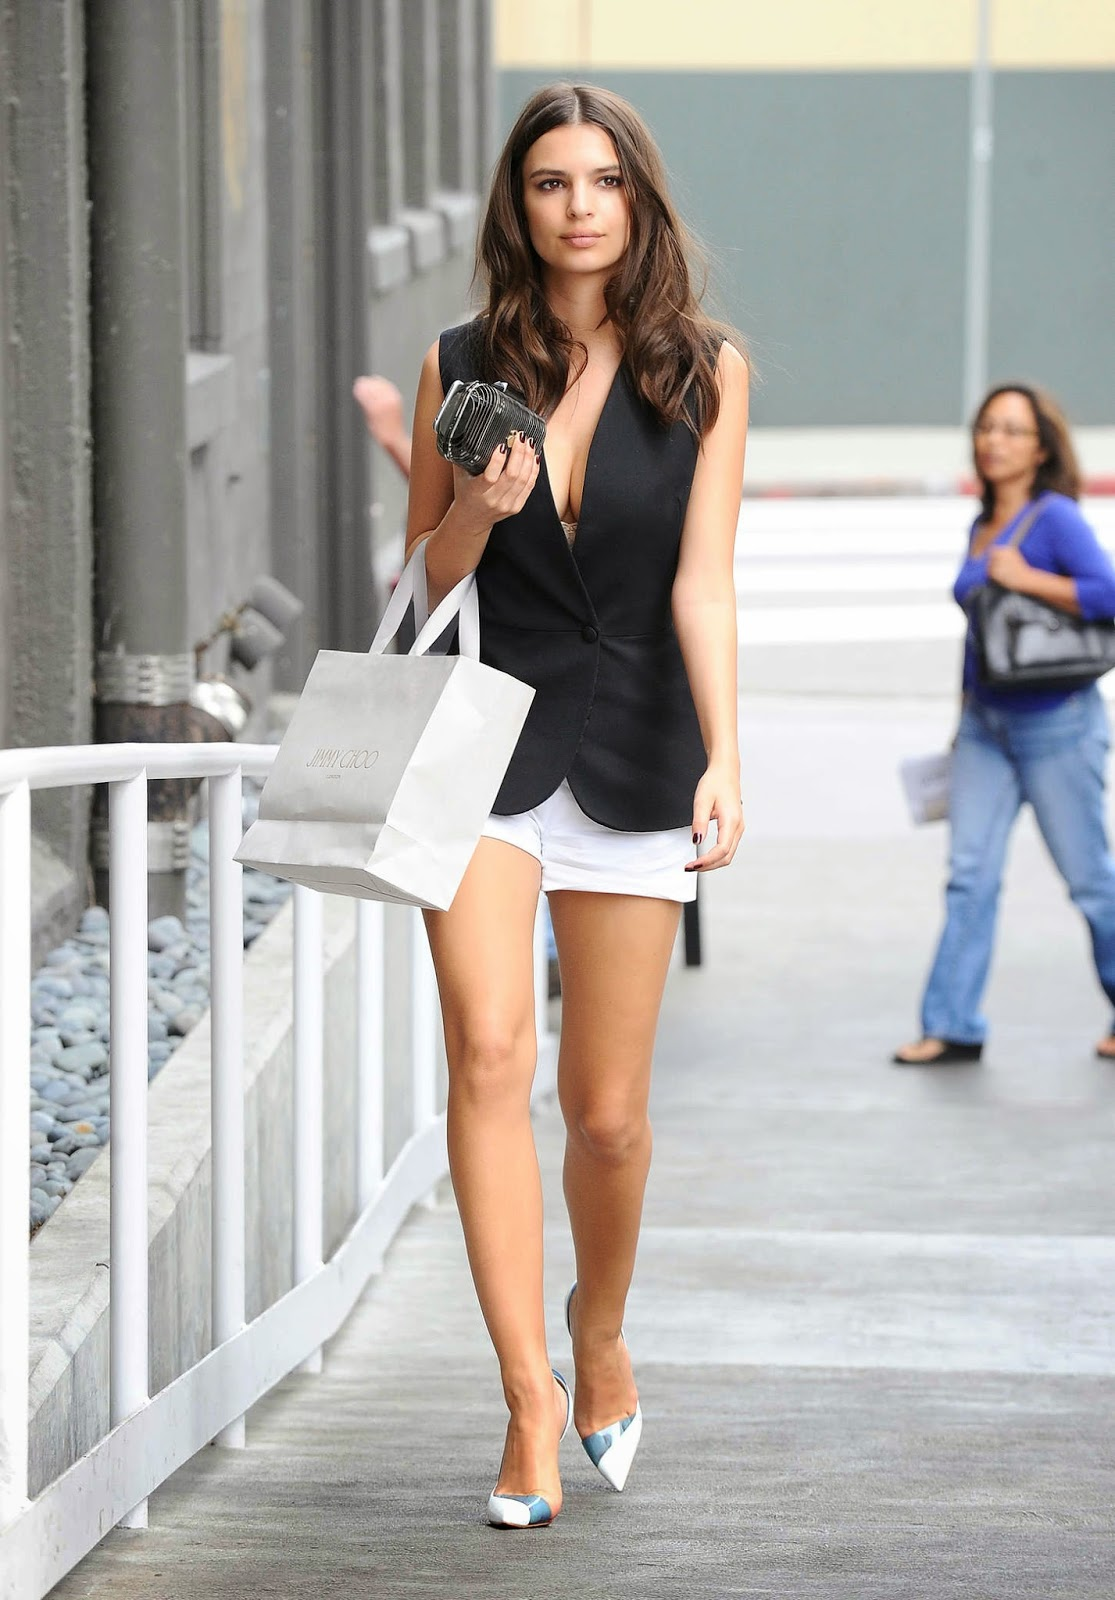 Emily Ratajkowski flaunts legs and cleavage out and about in LA